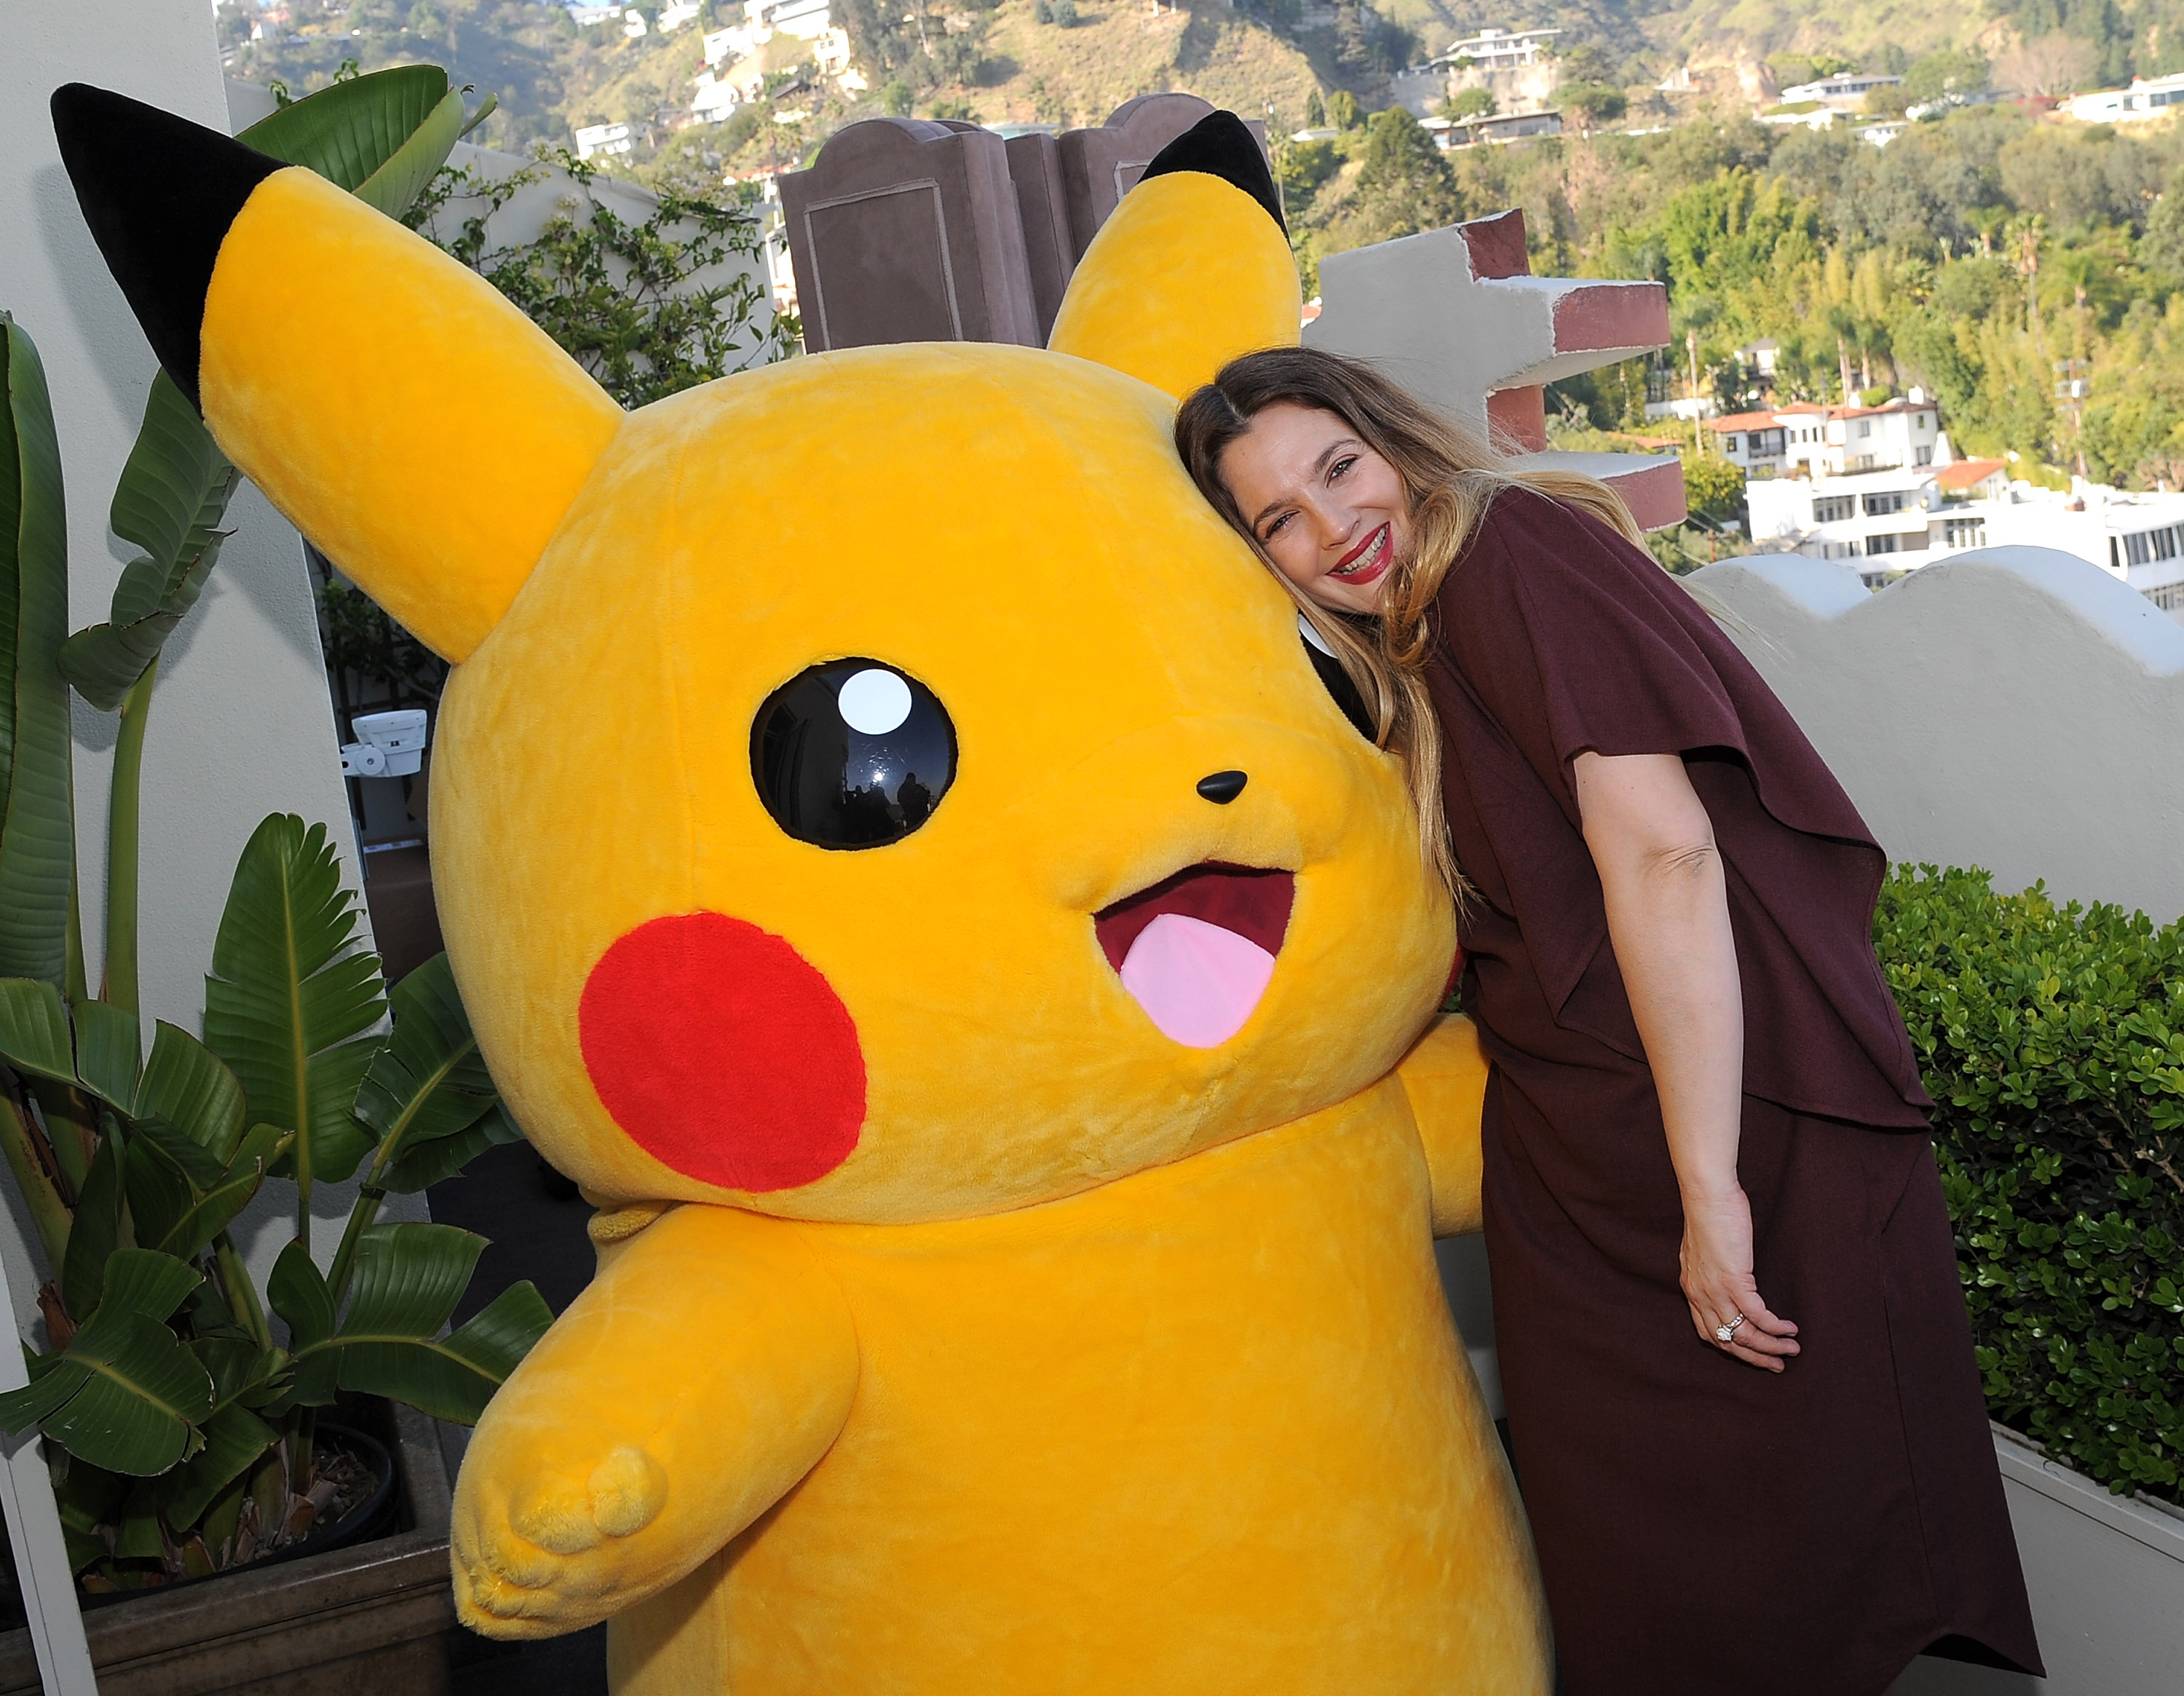 Pikachu and Drew Barrymore. Photo: Angela Weiss / Getty Images